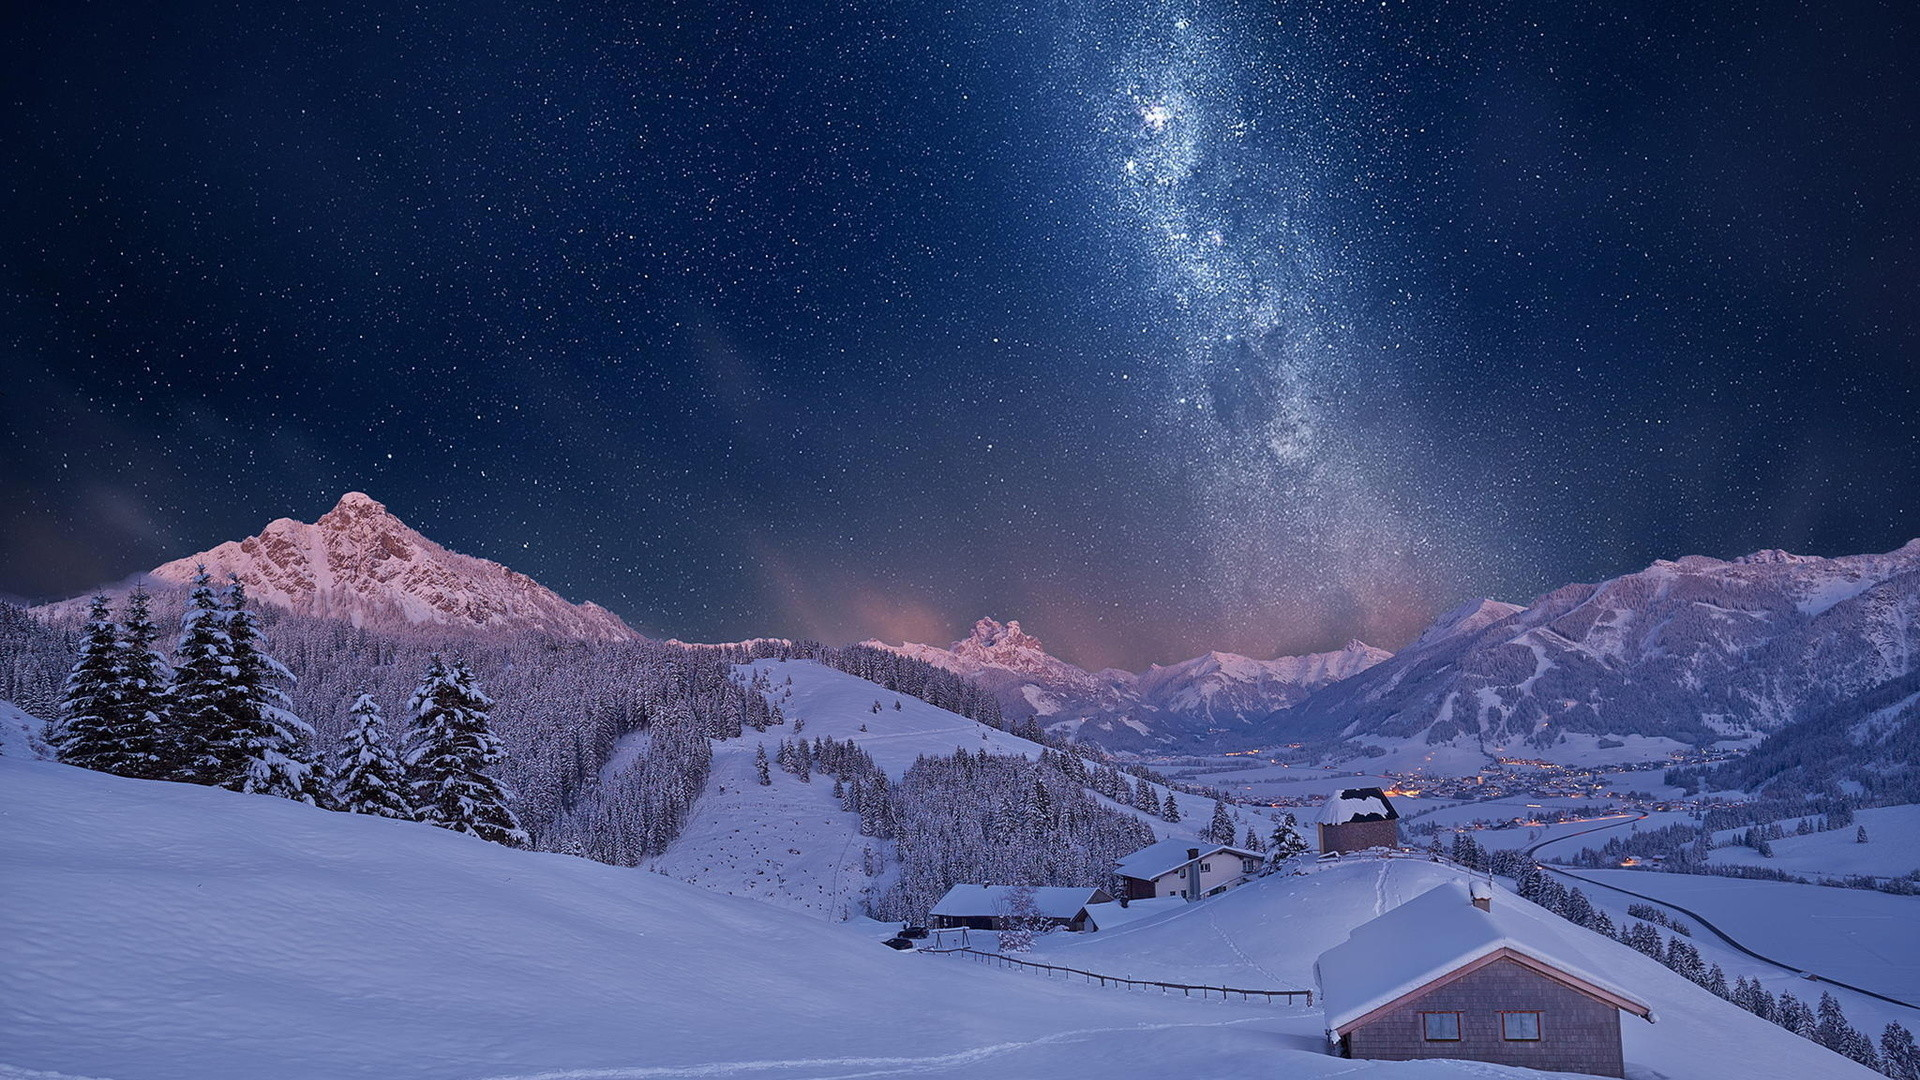 1920x1080 Wonderful Starry Night Above A Town In A Valley HD Desktop Background  wallpaper